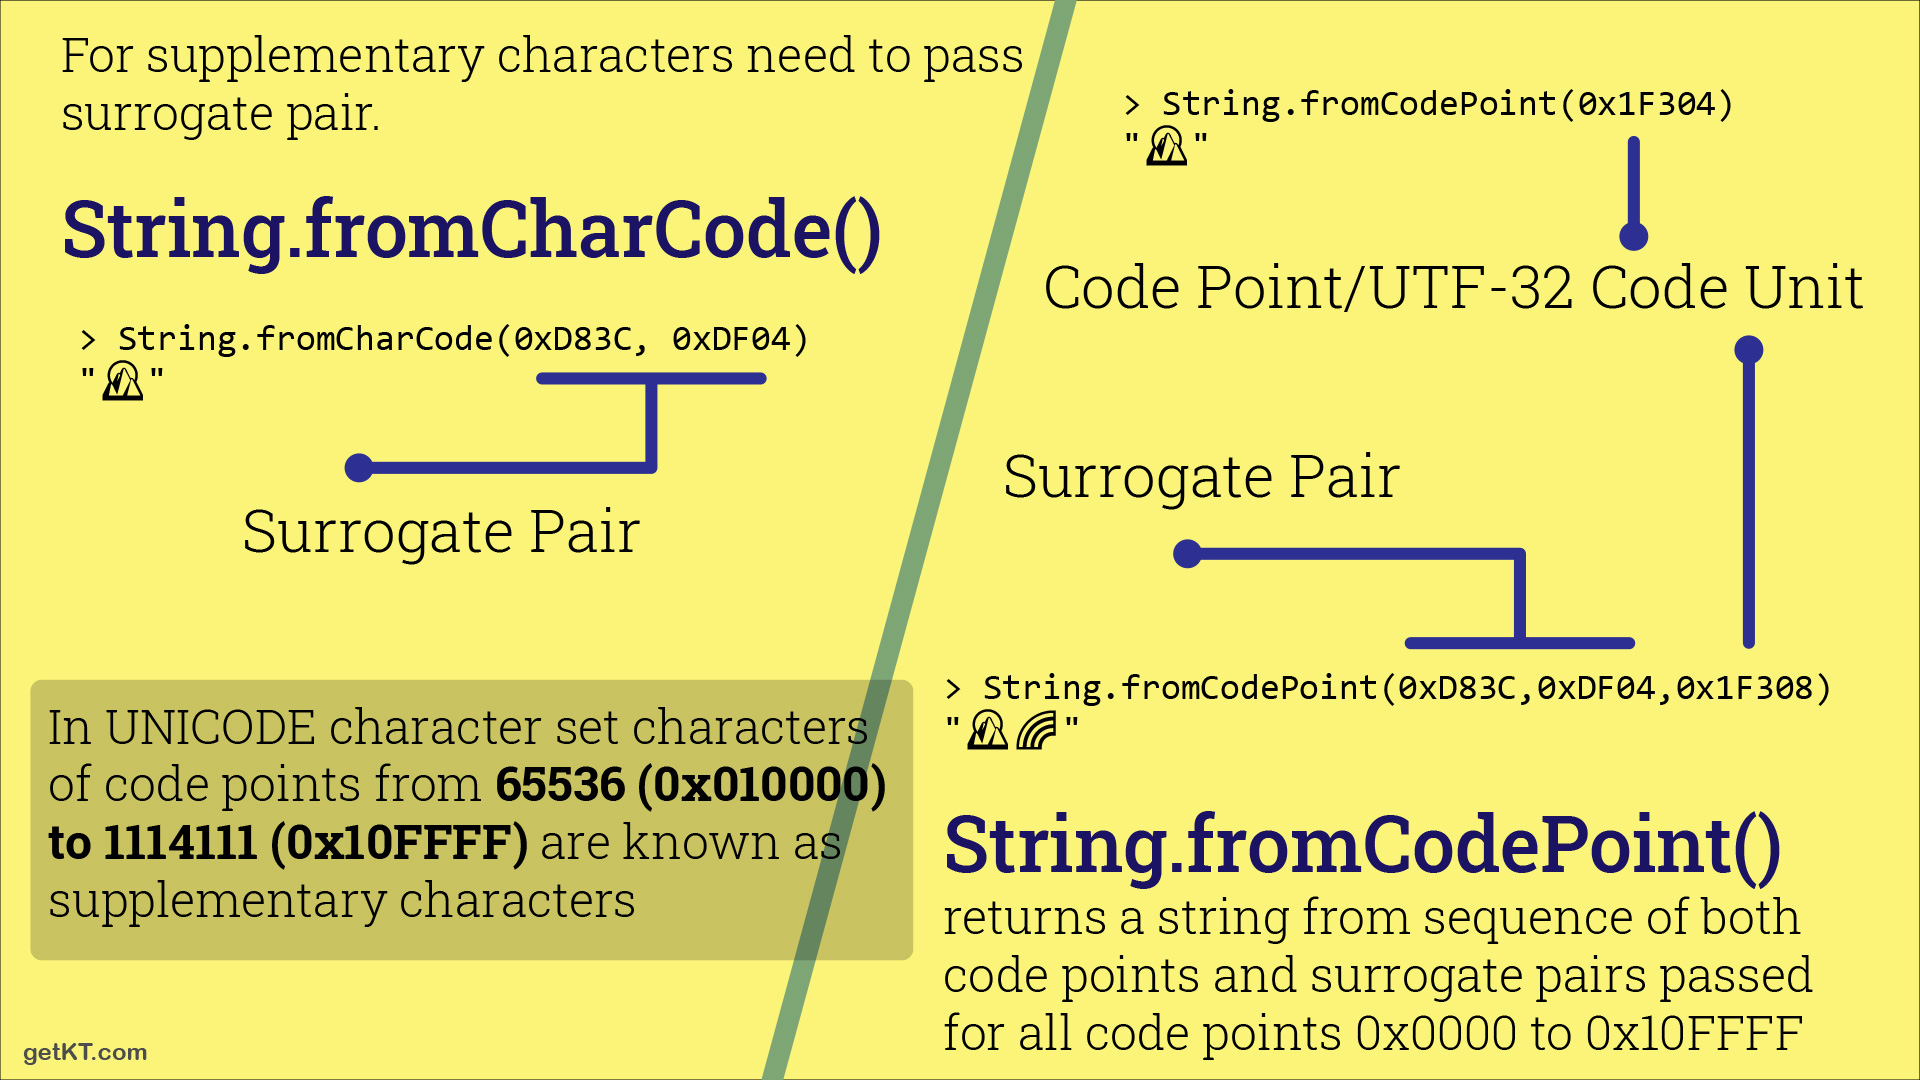 String.fromCharCode vs String.fromCodePoint